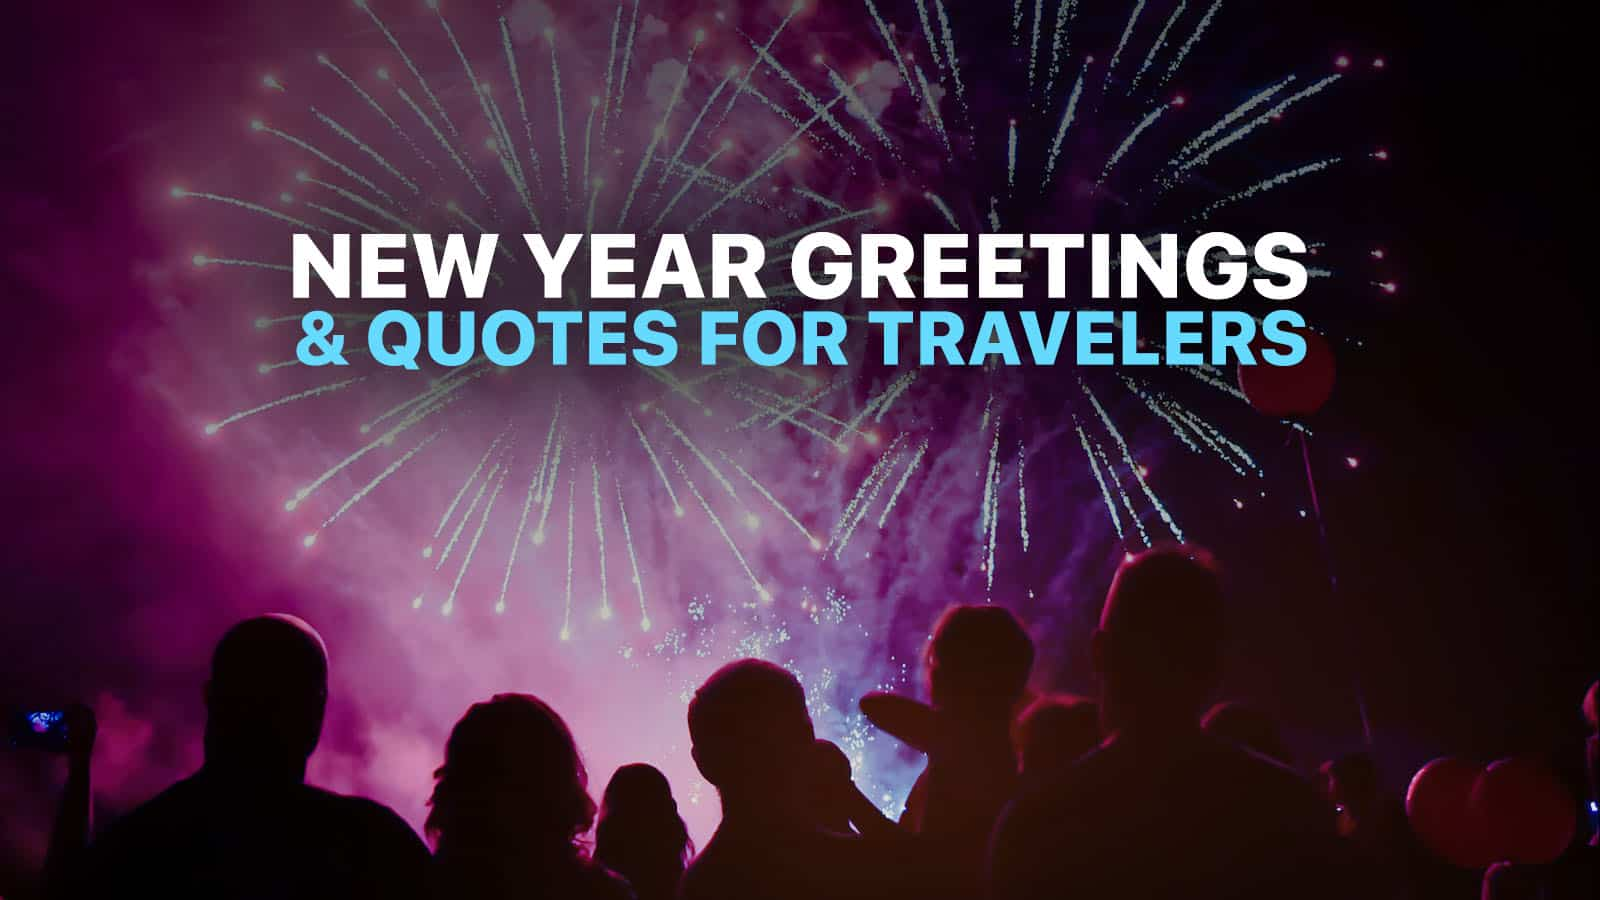 12 new year quotes and greetings for travelers the poor traveler 12 new year quotes and greetings for travelers m4hsunfo